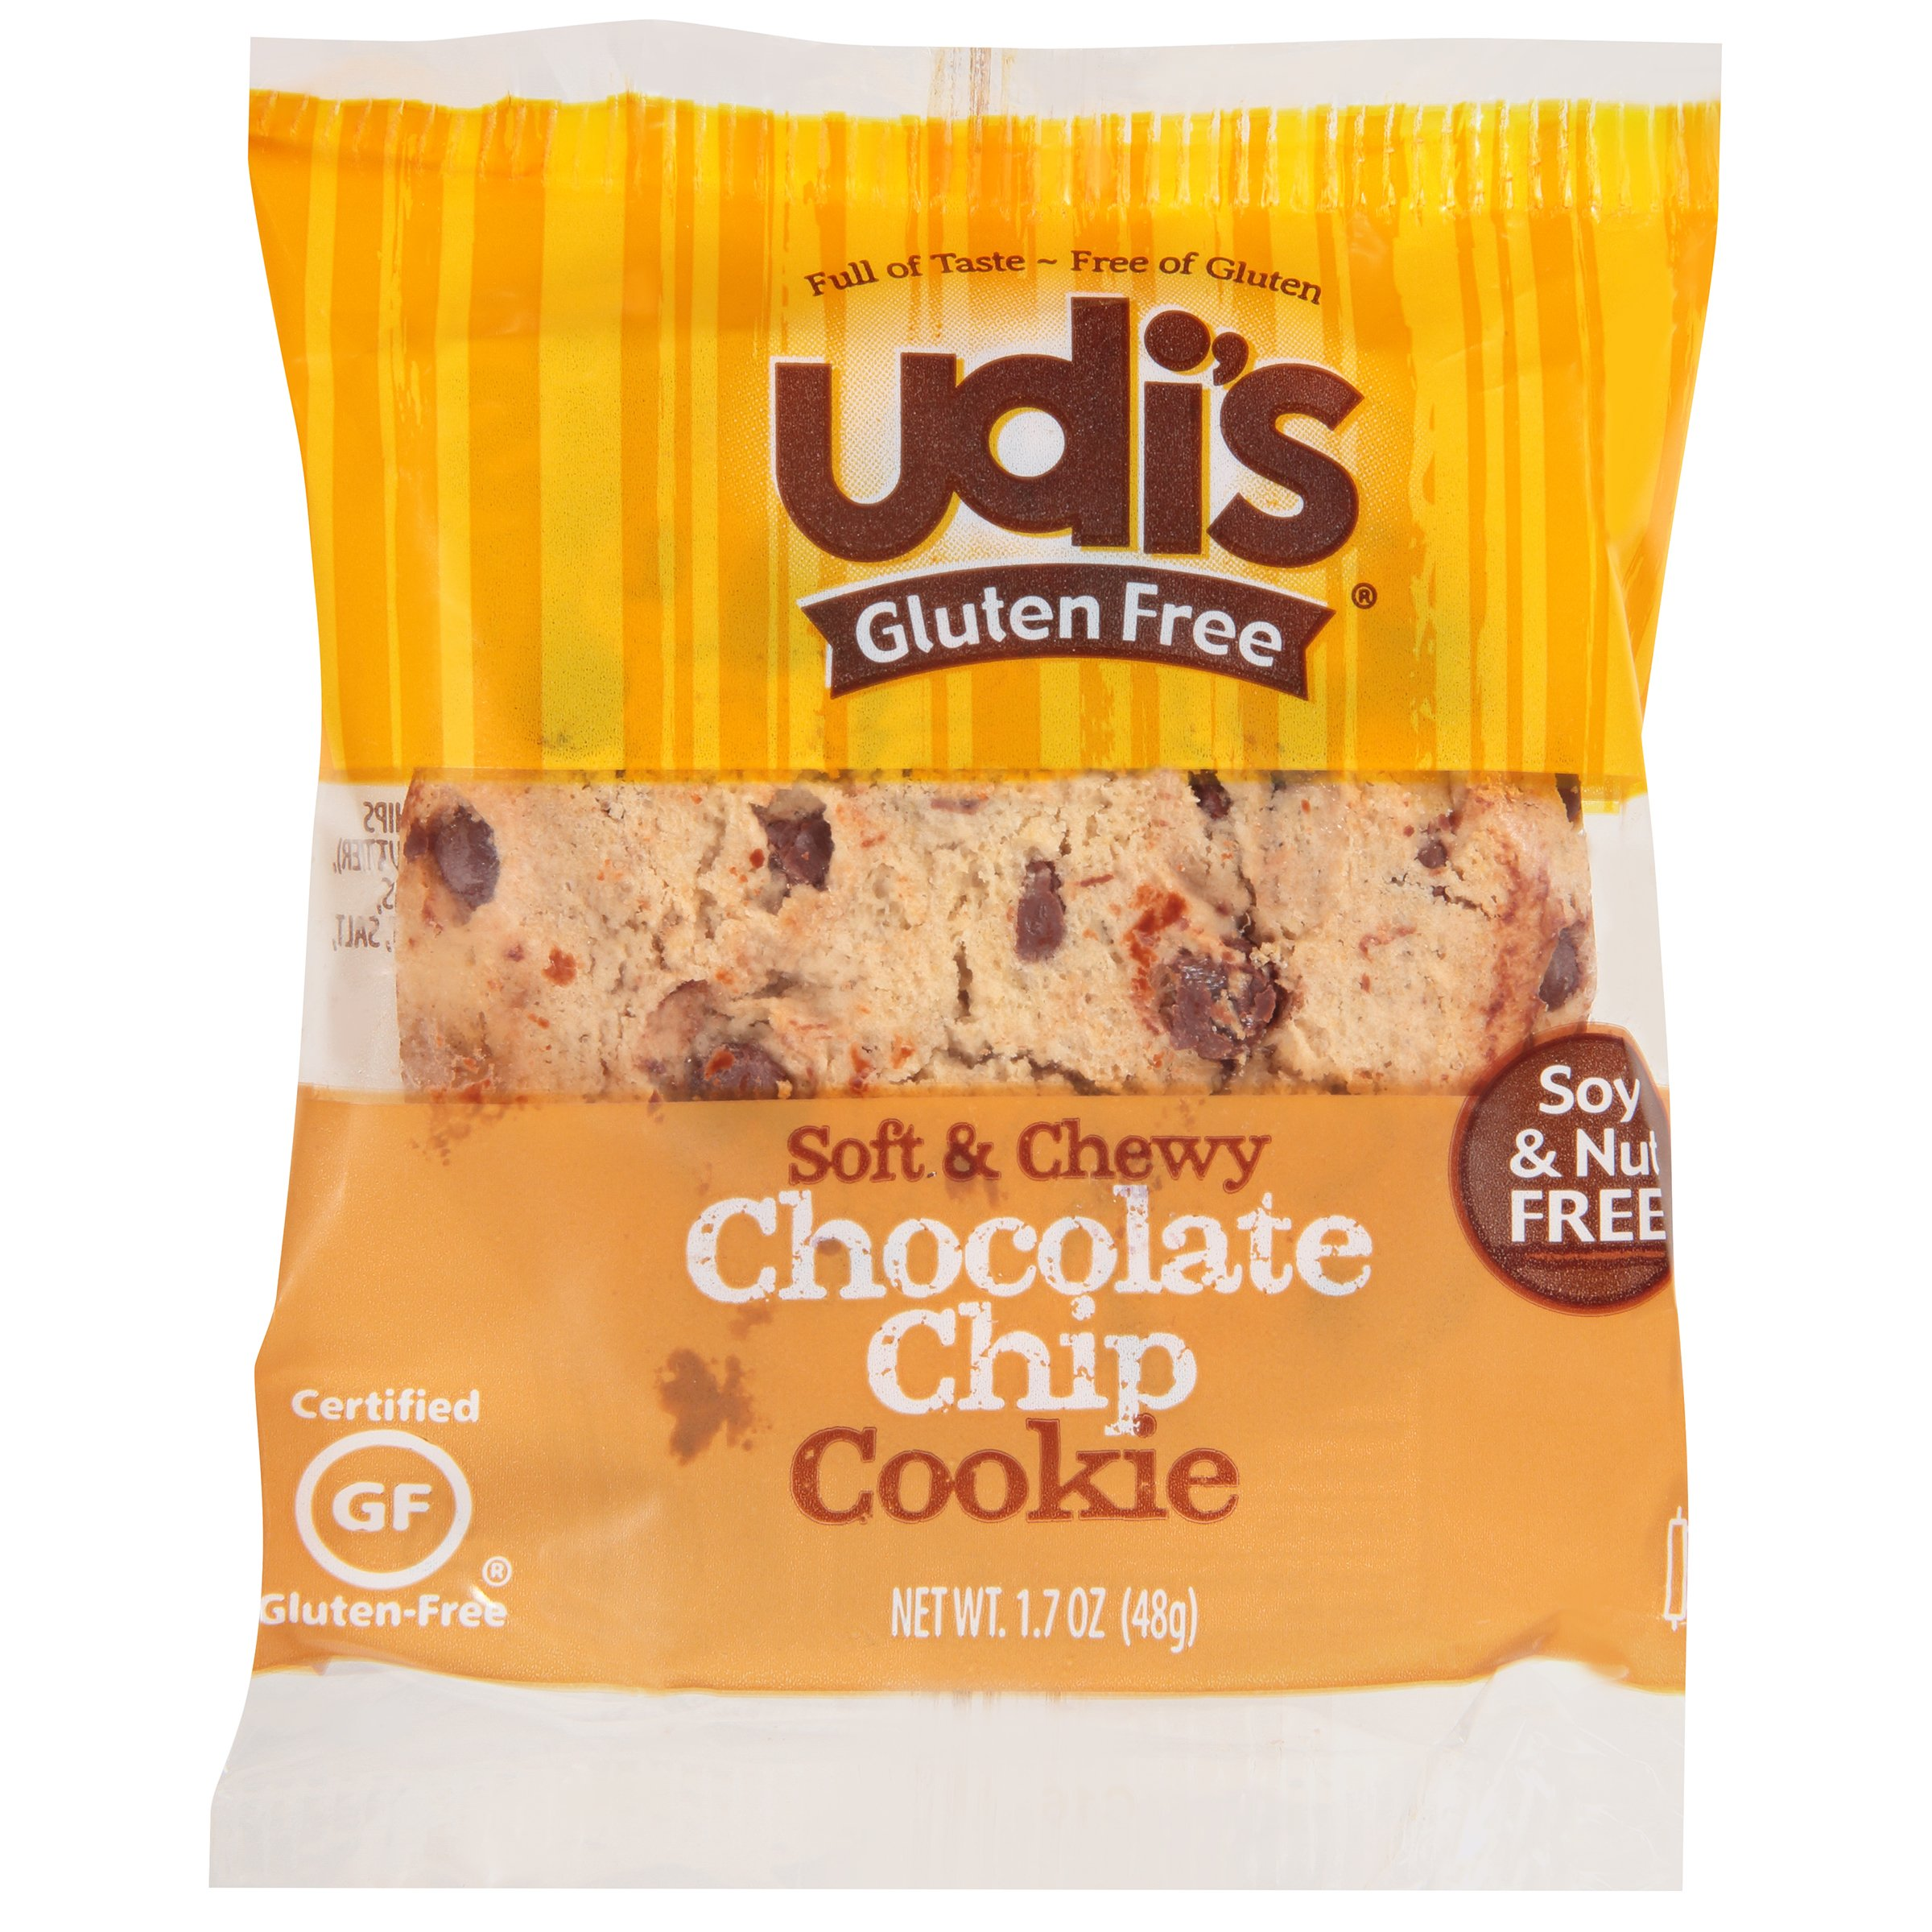 Udi's Gluten Free Individually Wrapped Chocolate Chip Cookie, 1.7 oz, Pack of 36